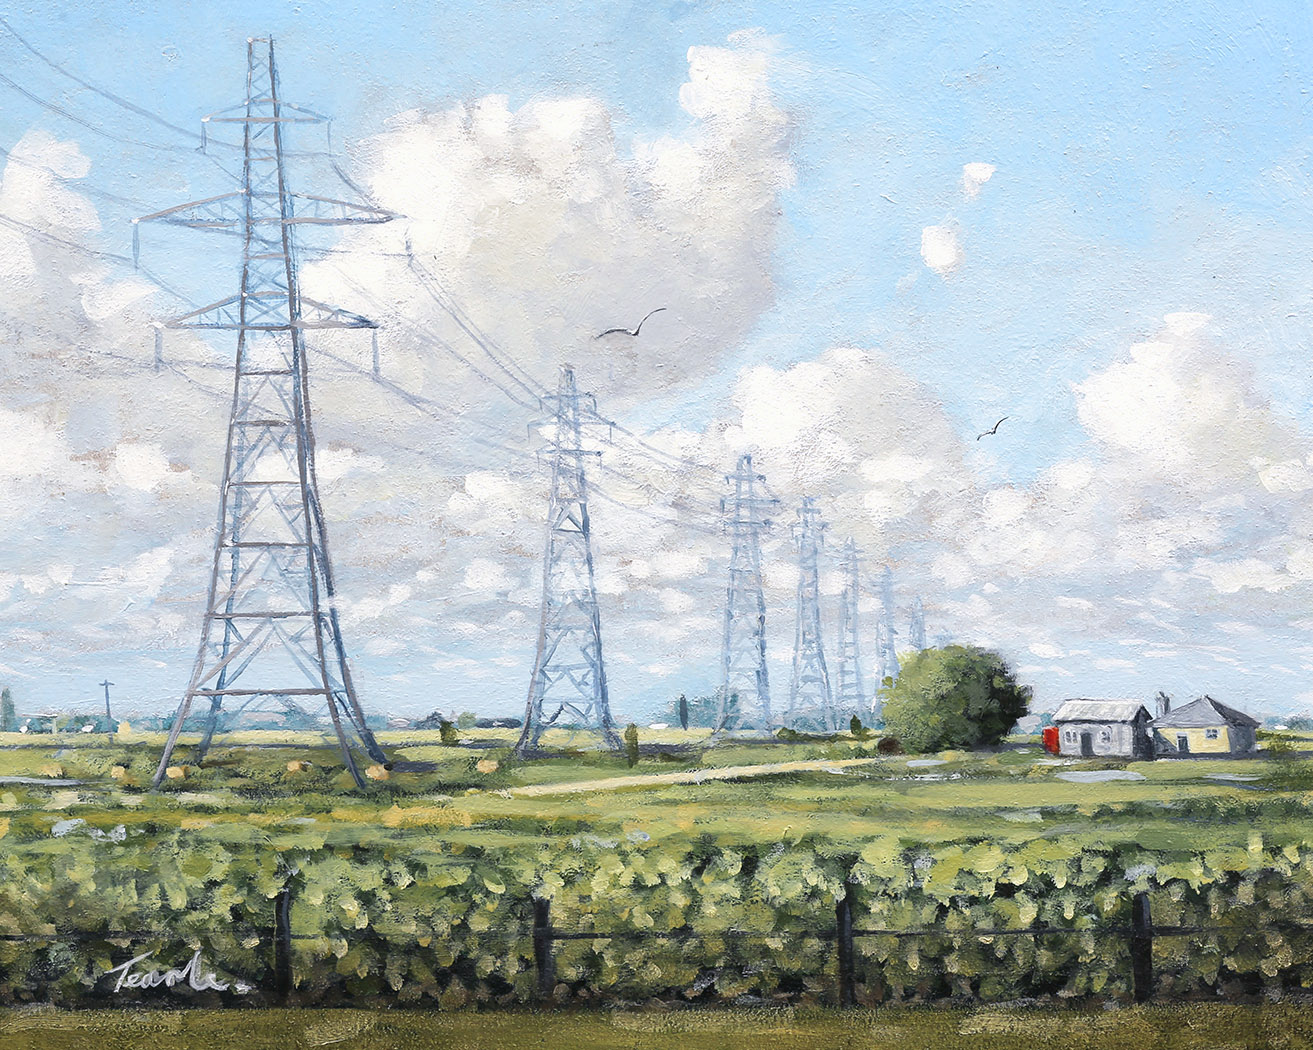 The Flatlands of Cambridgeshire - Nick Tearle Fenland Artist